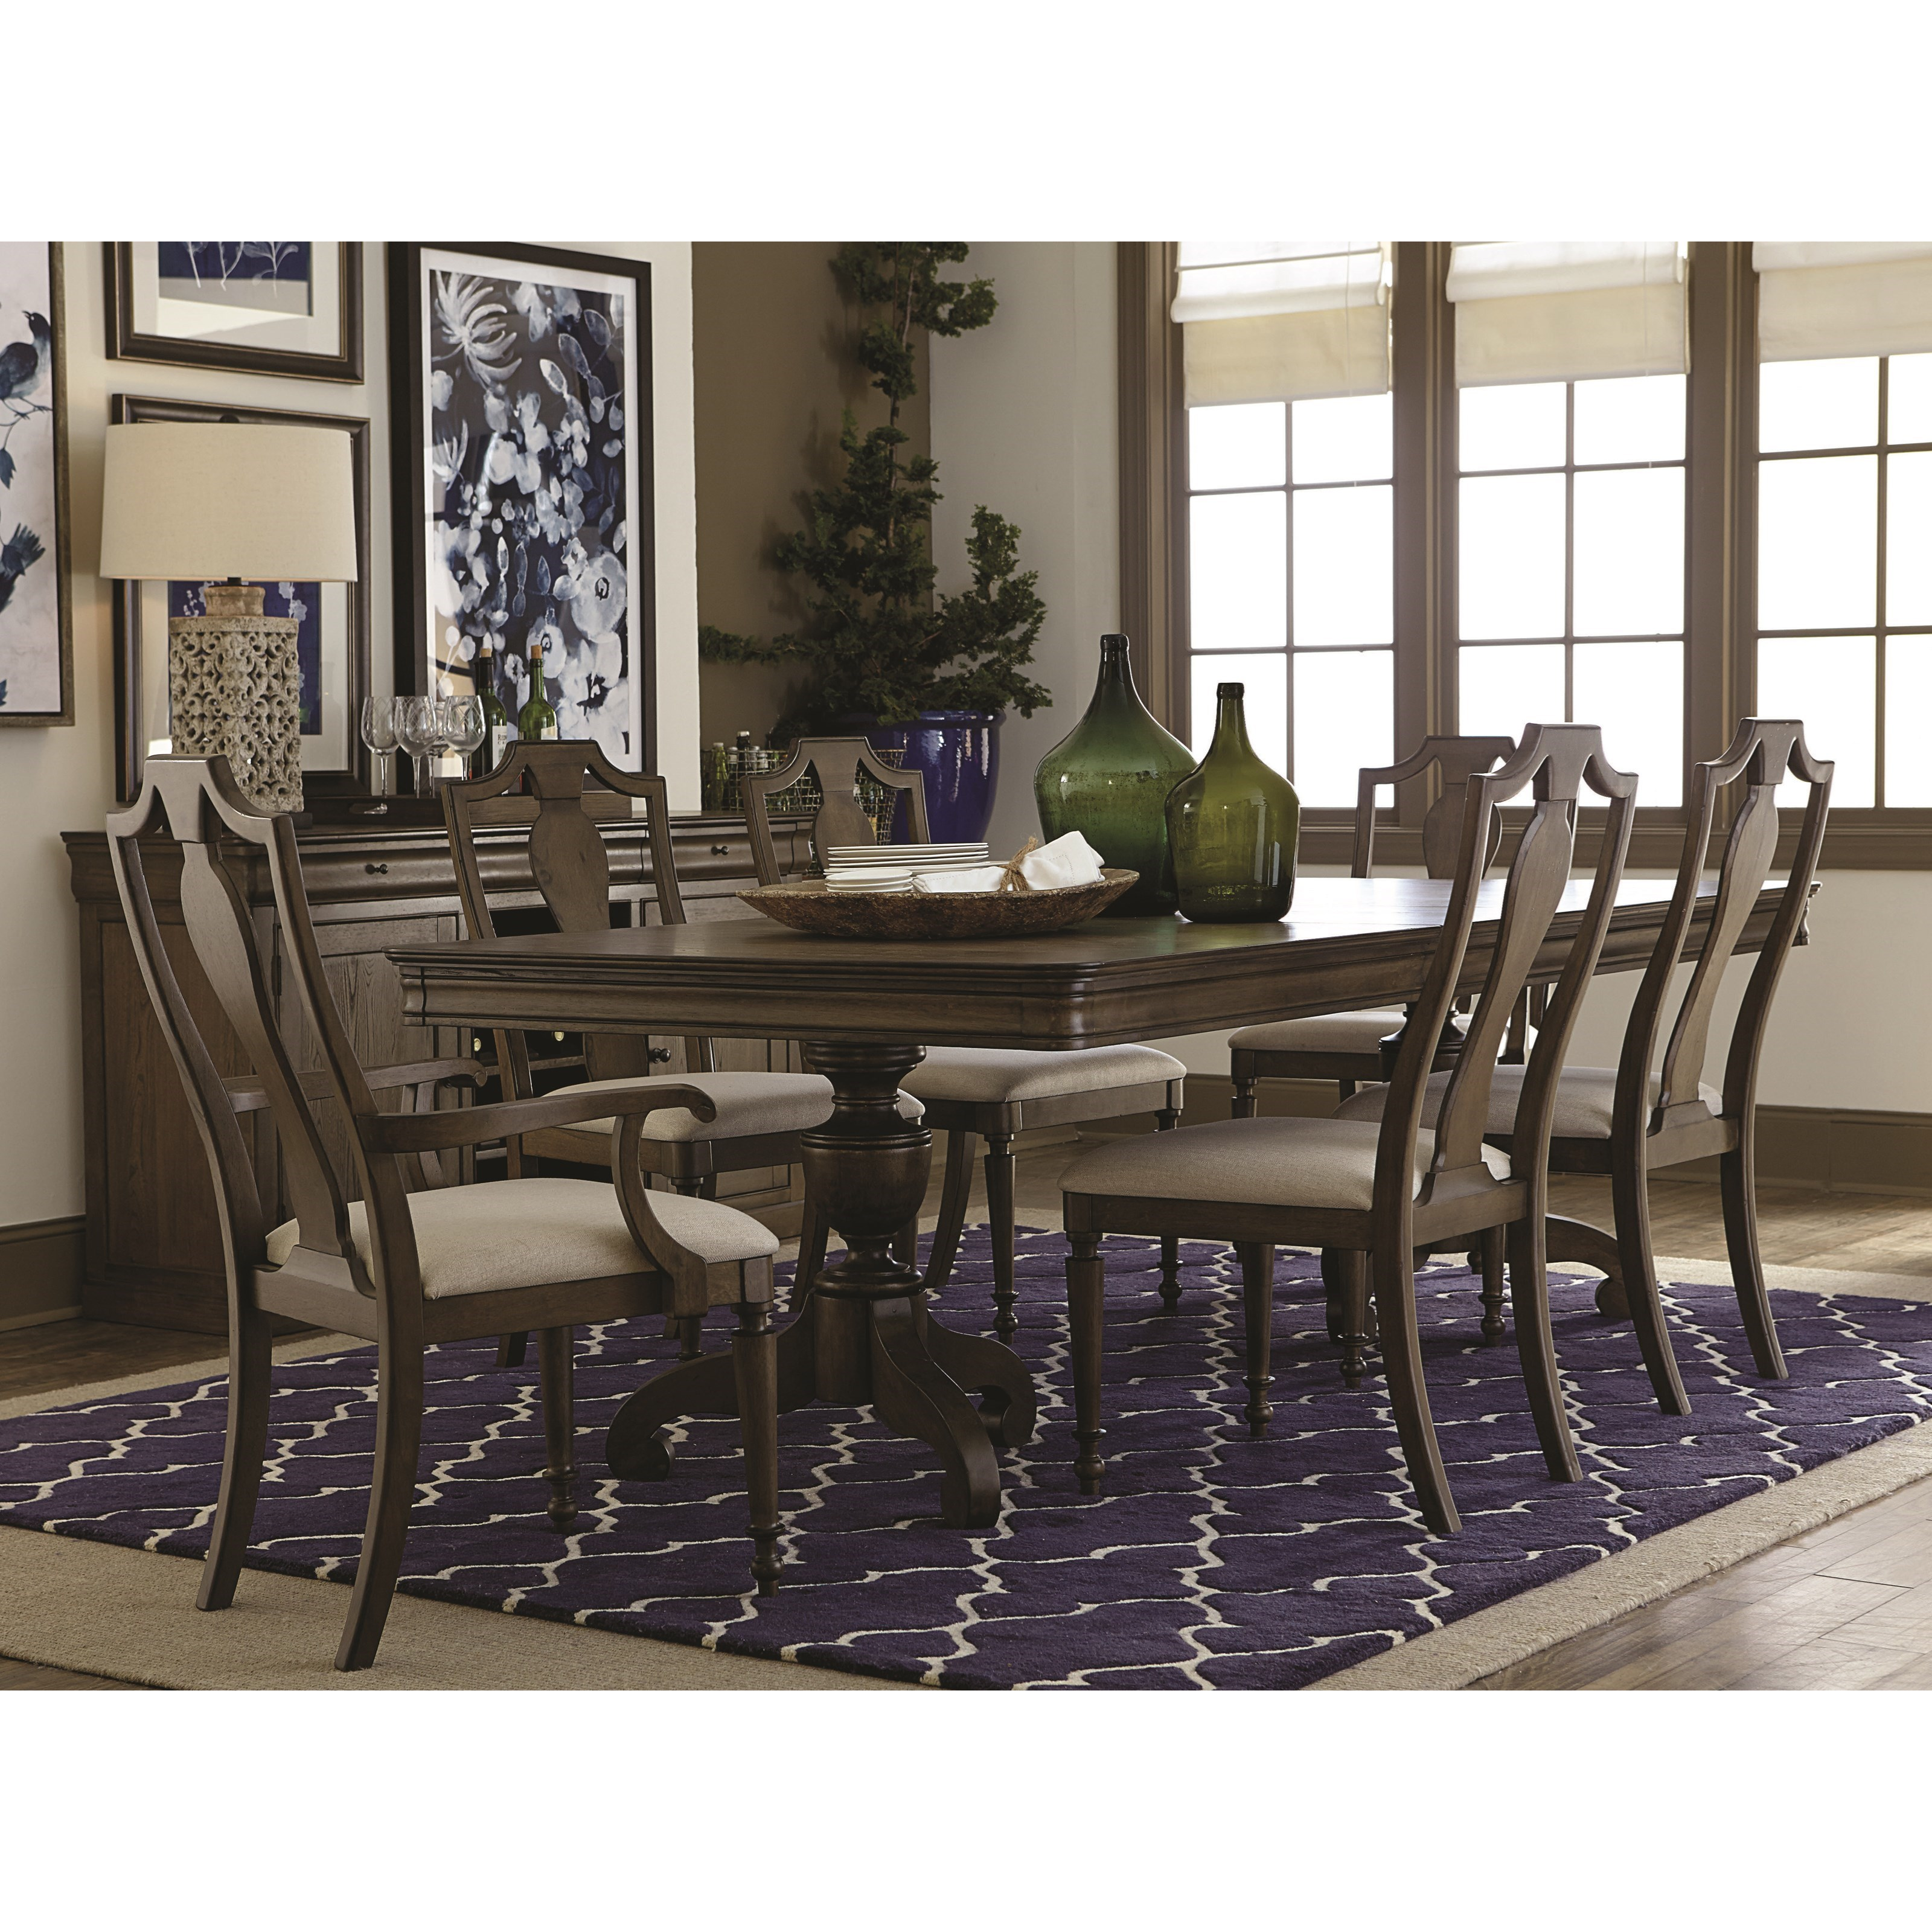 Bassett Dining Room Set: Bassett Provence Formal Dining Room Table And Chair Set